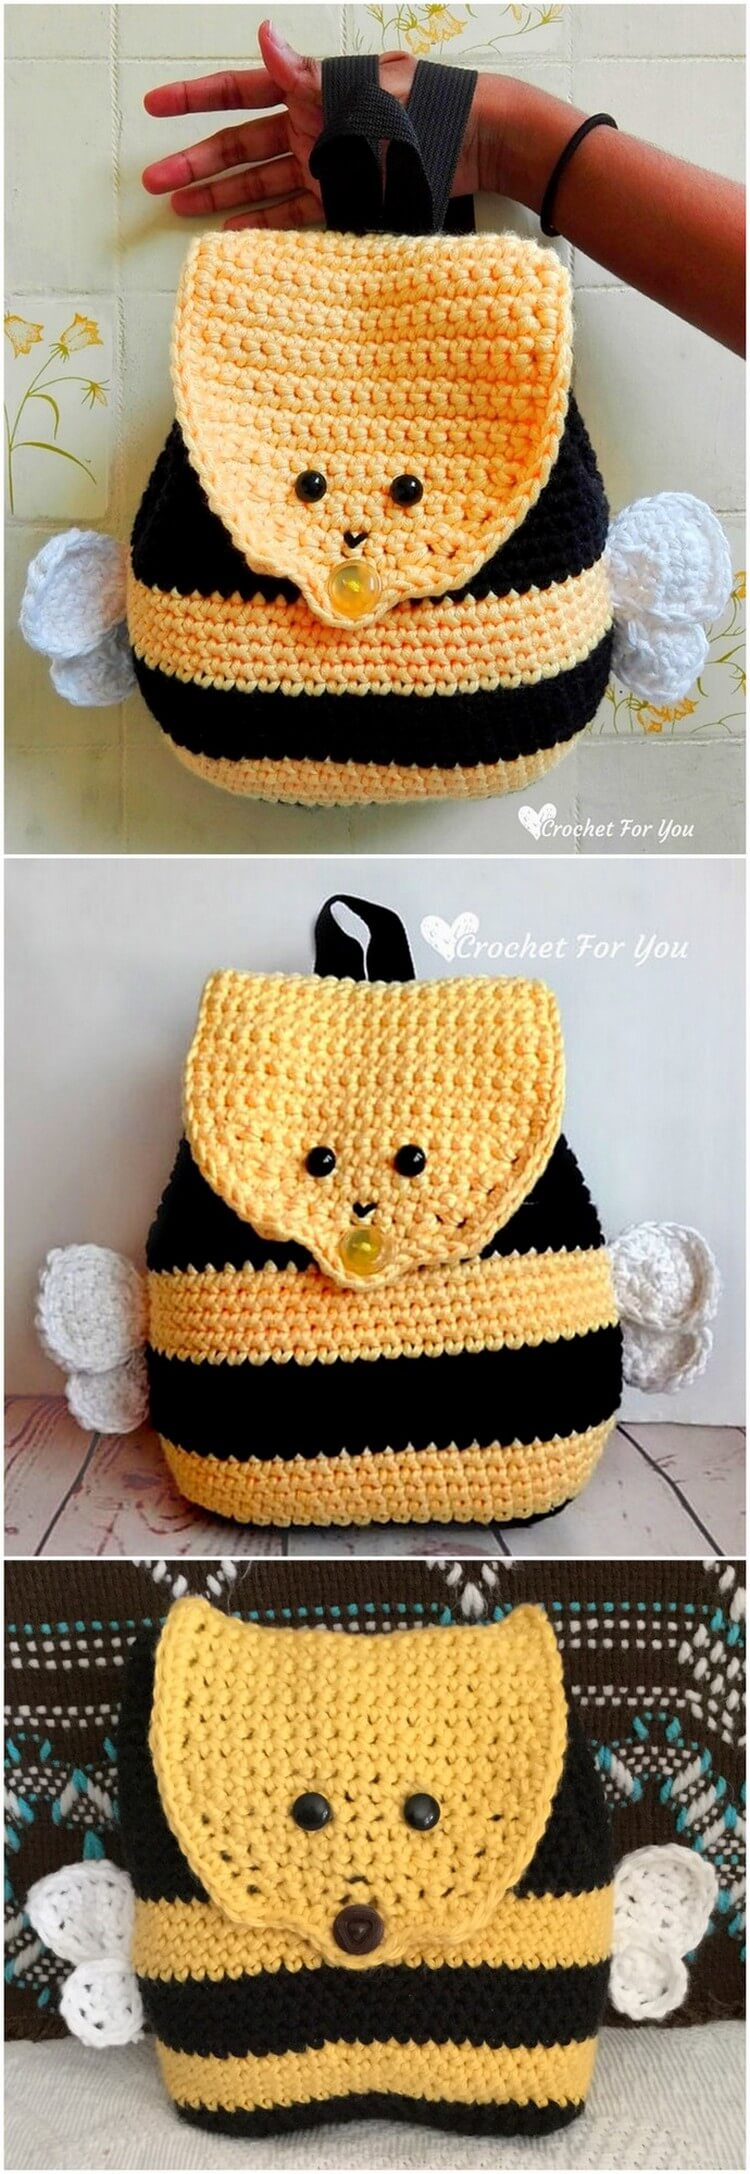 Crochet Backpack Pattern (20)